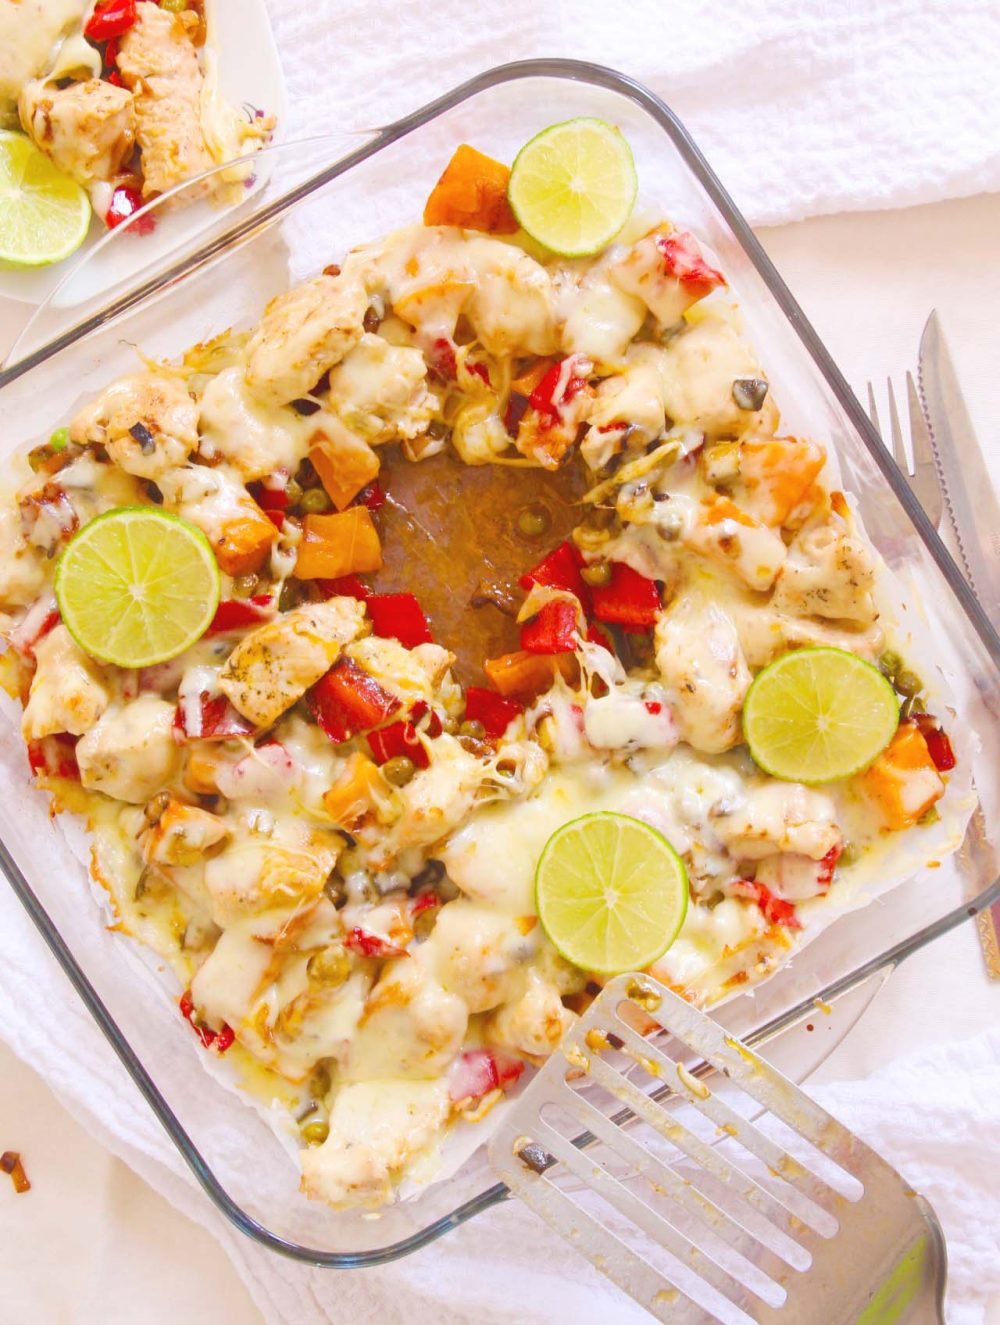 Squash Turkey Bake